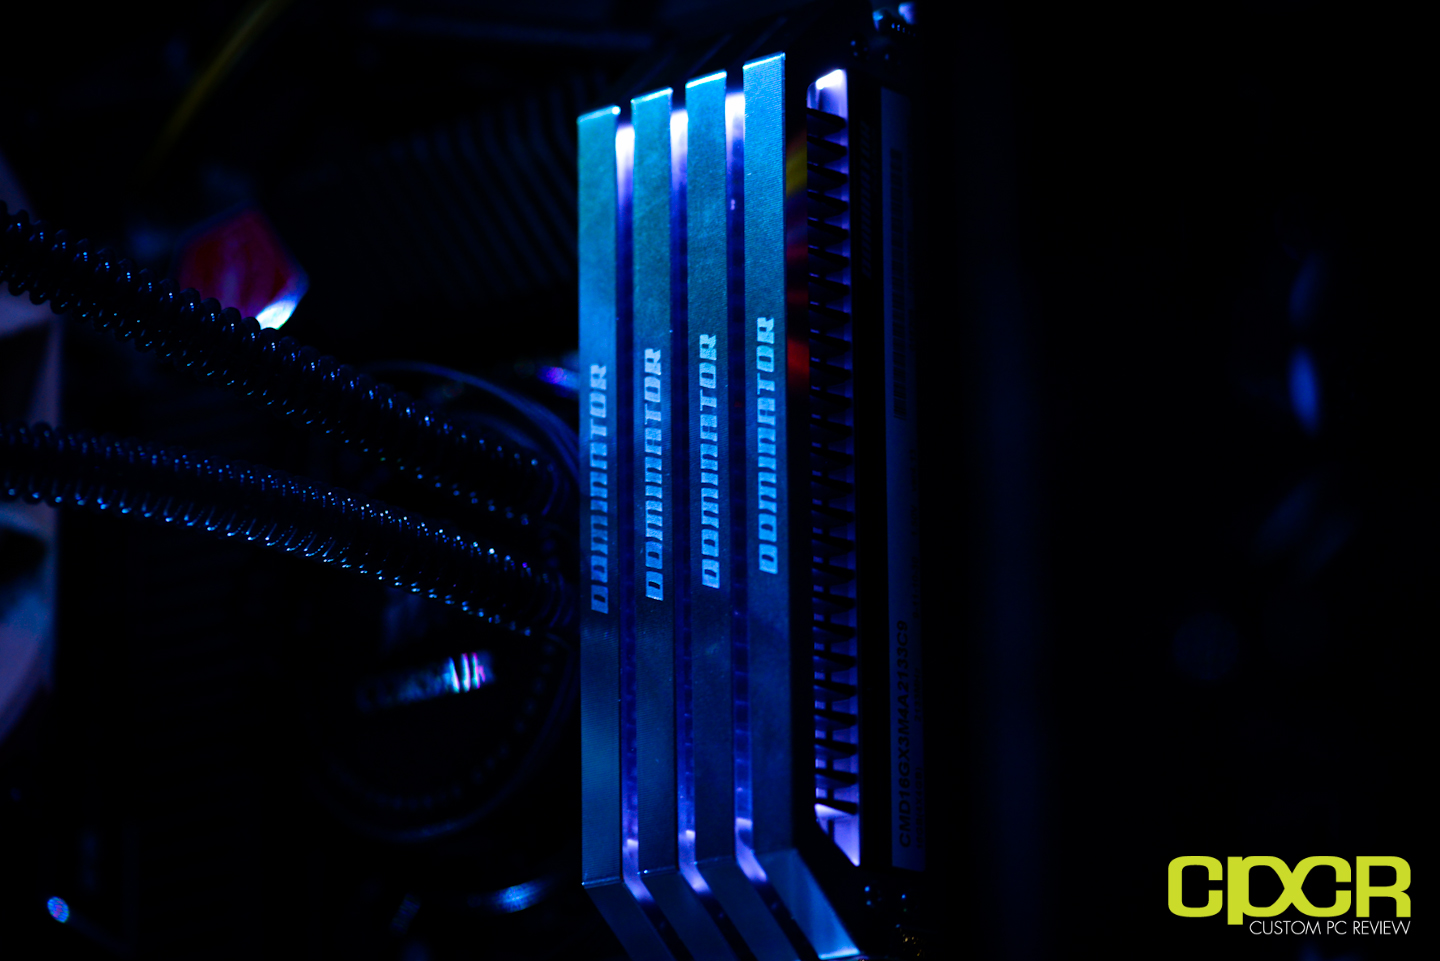 corsair cue how to change order of what light up